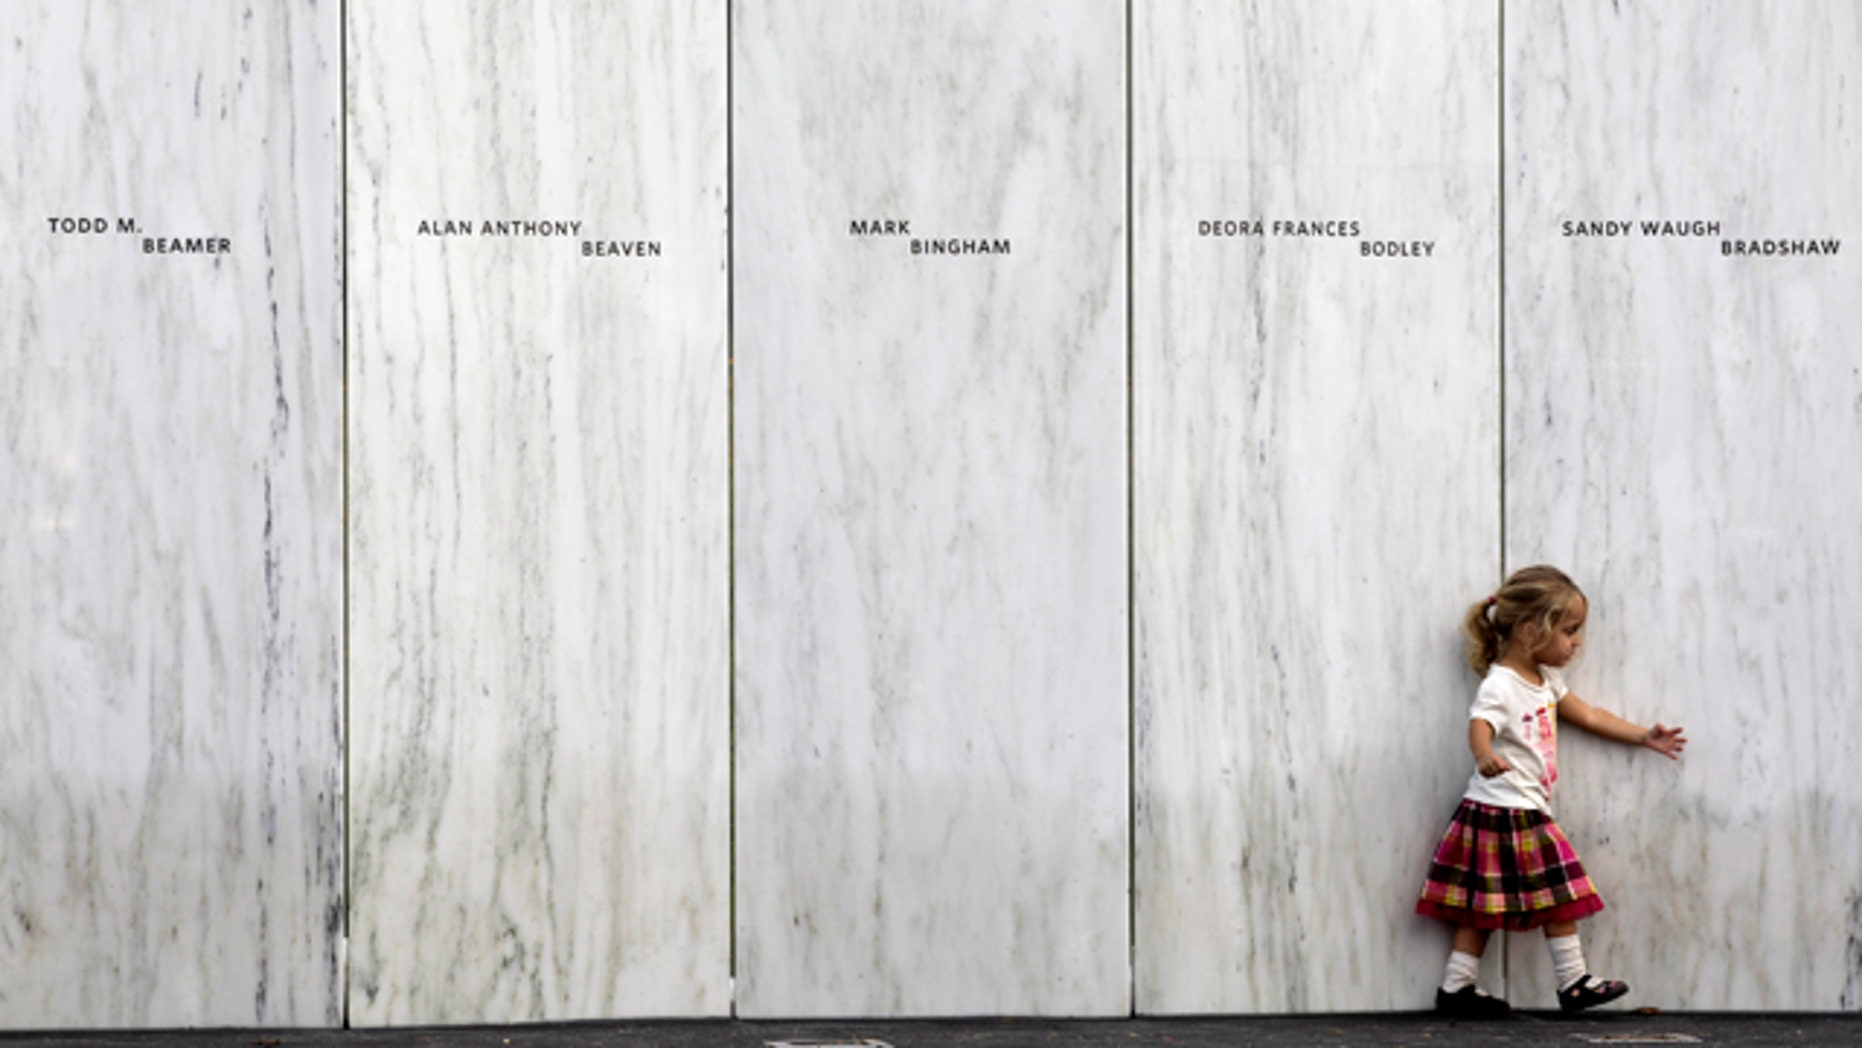 Sept 10: A family member of one of the victims of the crash of United Flight 93 walks along a section of Phase 1 of the permanent National Memorial following its dedication, near the crash site of Flight 93 in Shanksville, Pa.   The names of the 40 victims of the crash are iny Sanscribed on the marble panels.